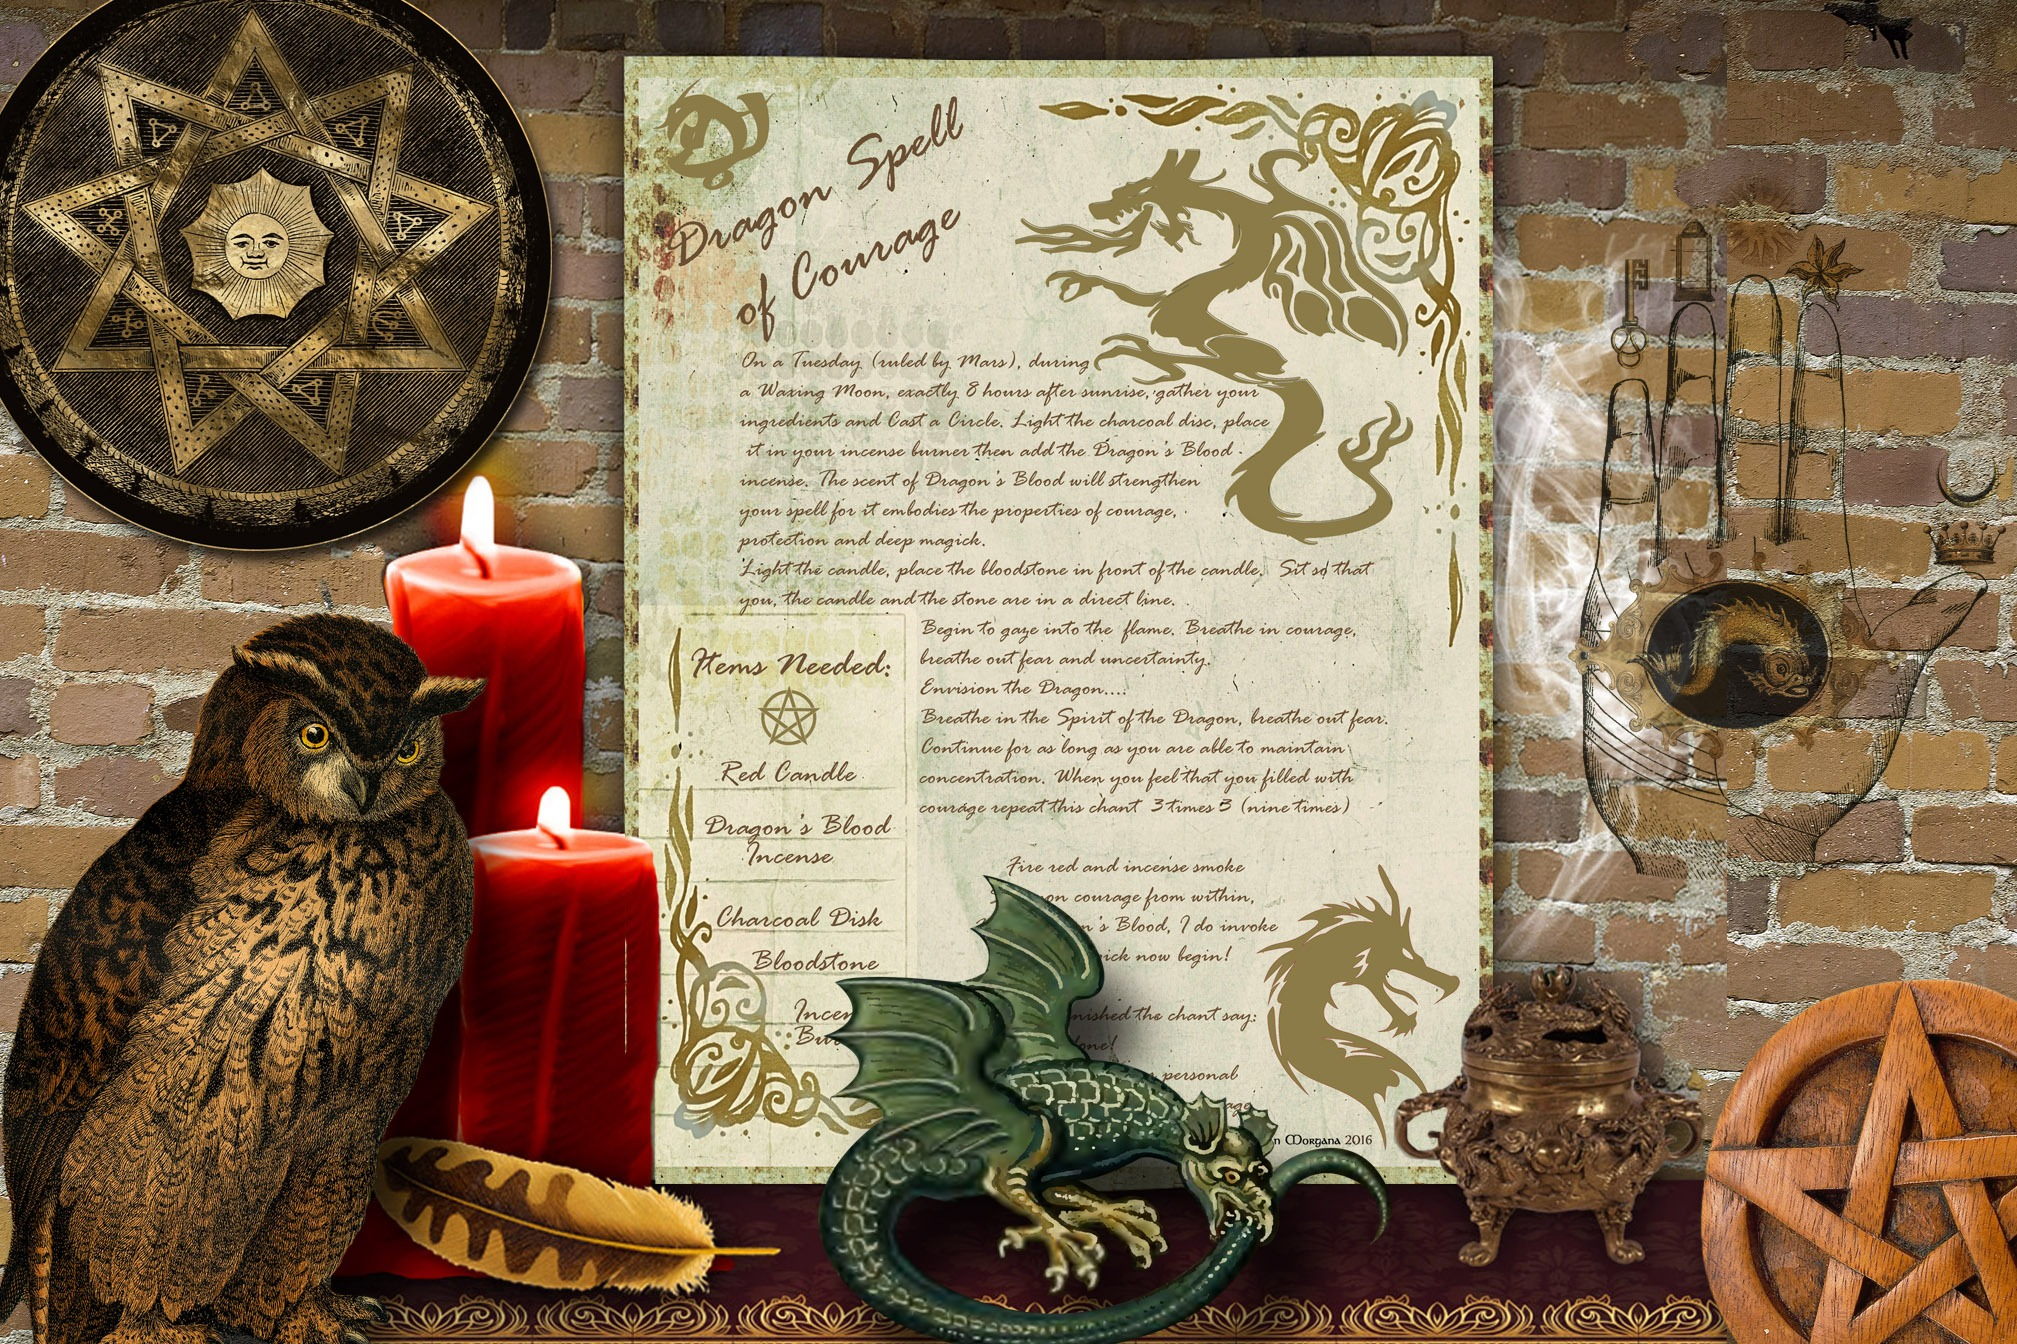 DRAGON SPELL of COURAGE